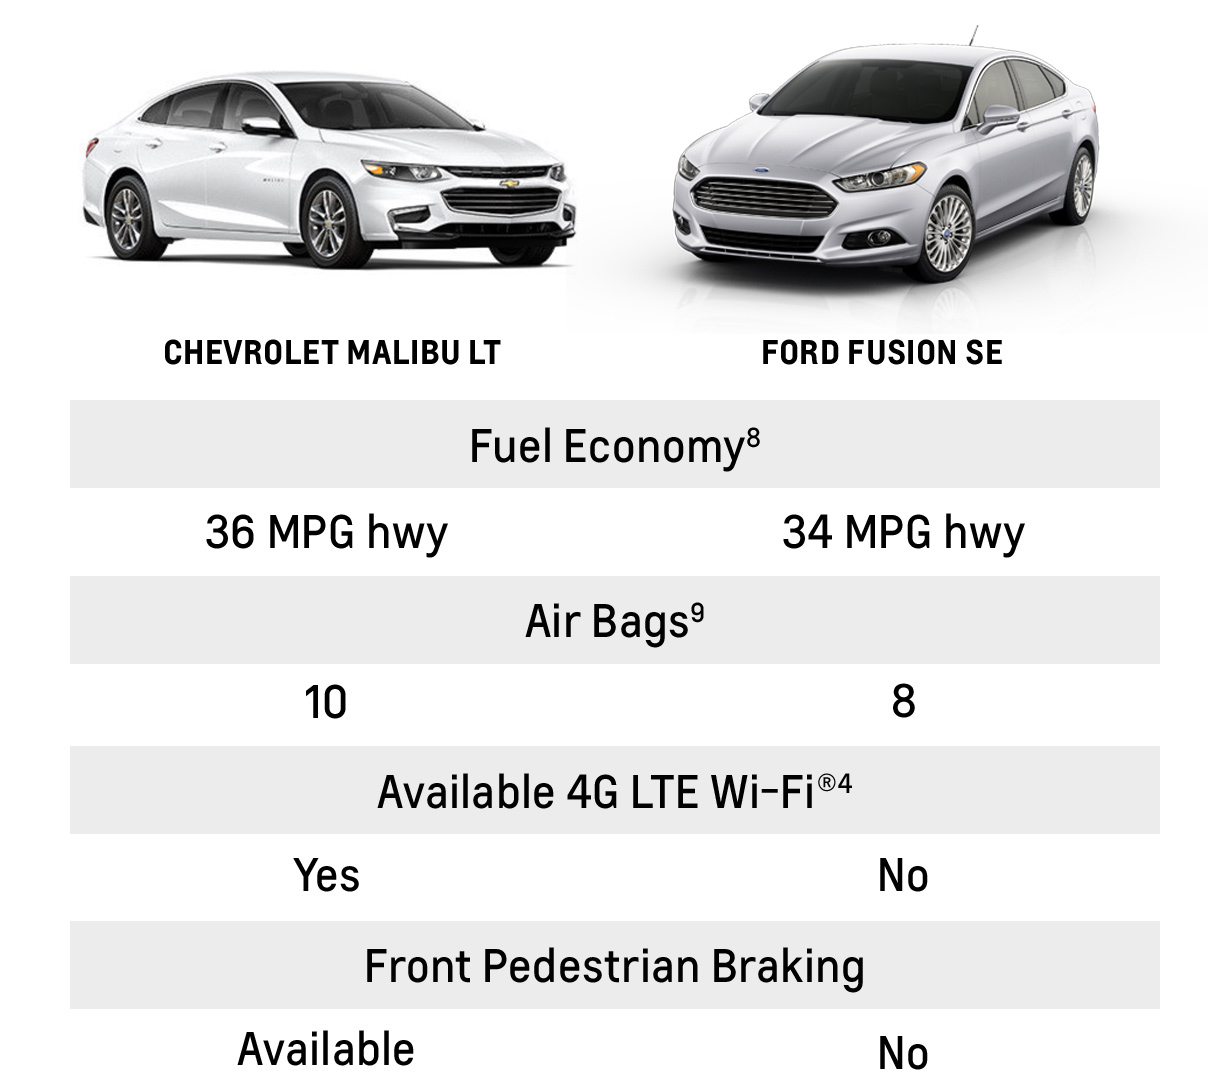 COMPARE CHEVROLET AND FORD VEHICLES - Weseloh Chevrolet